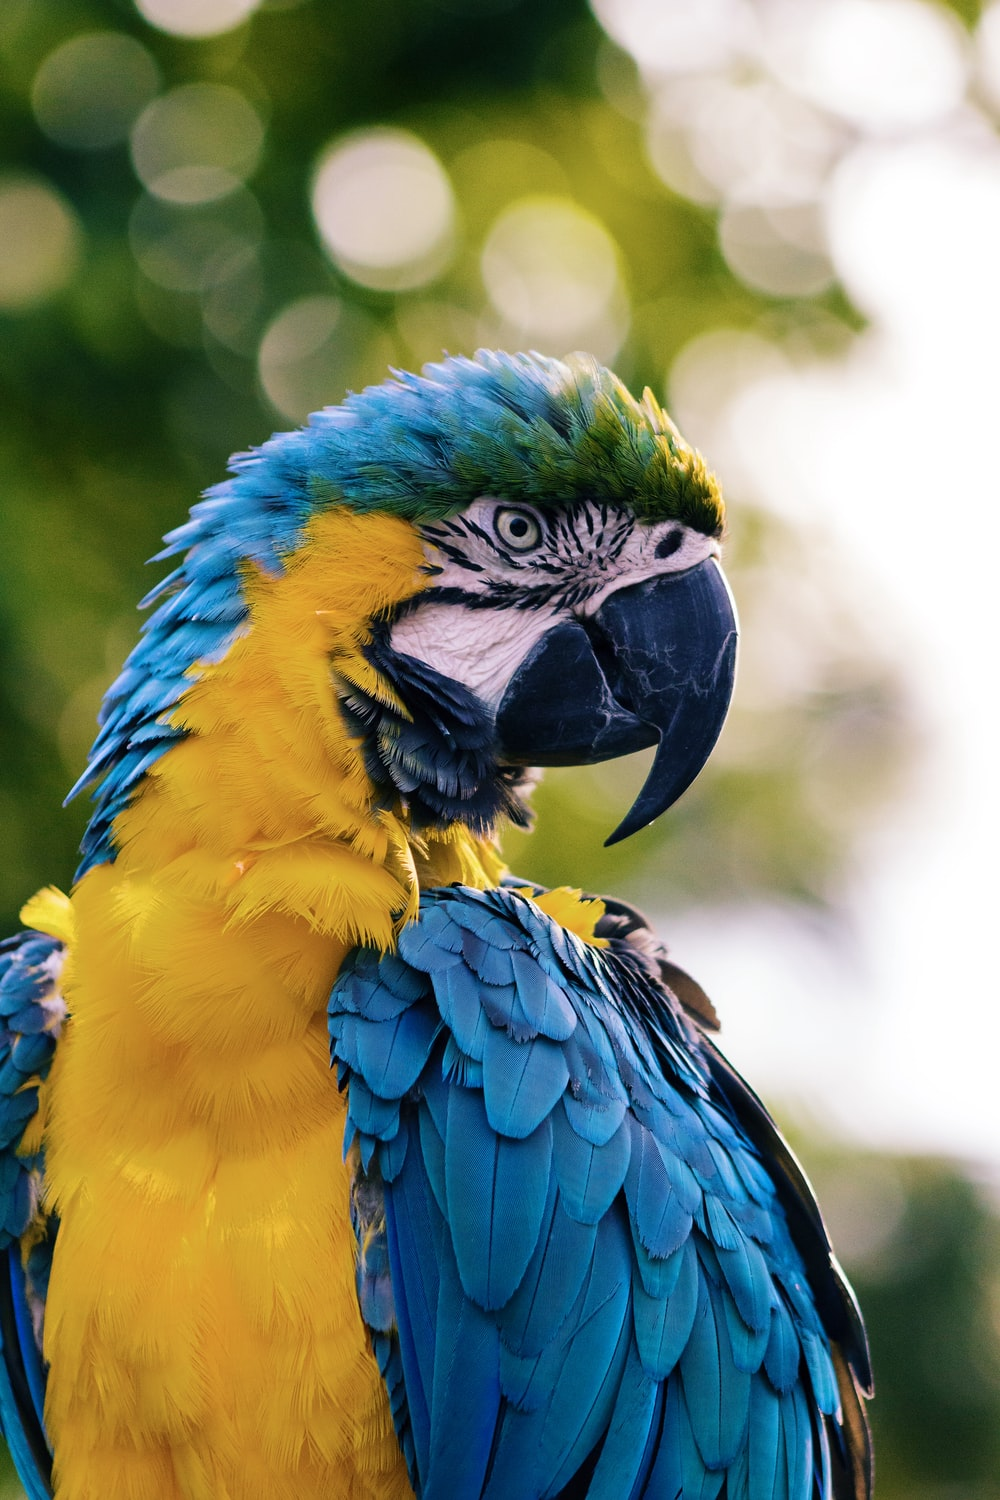 Colorful blue and yellow macaw parrot at West Palm Beach